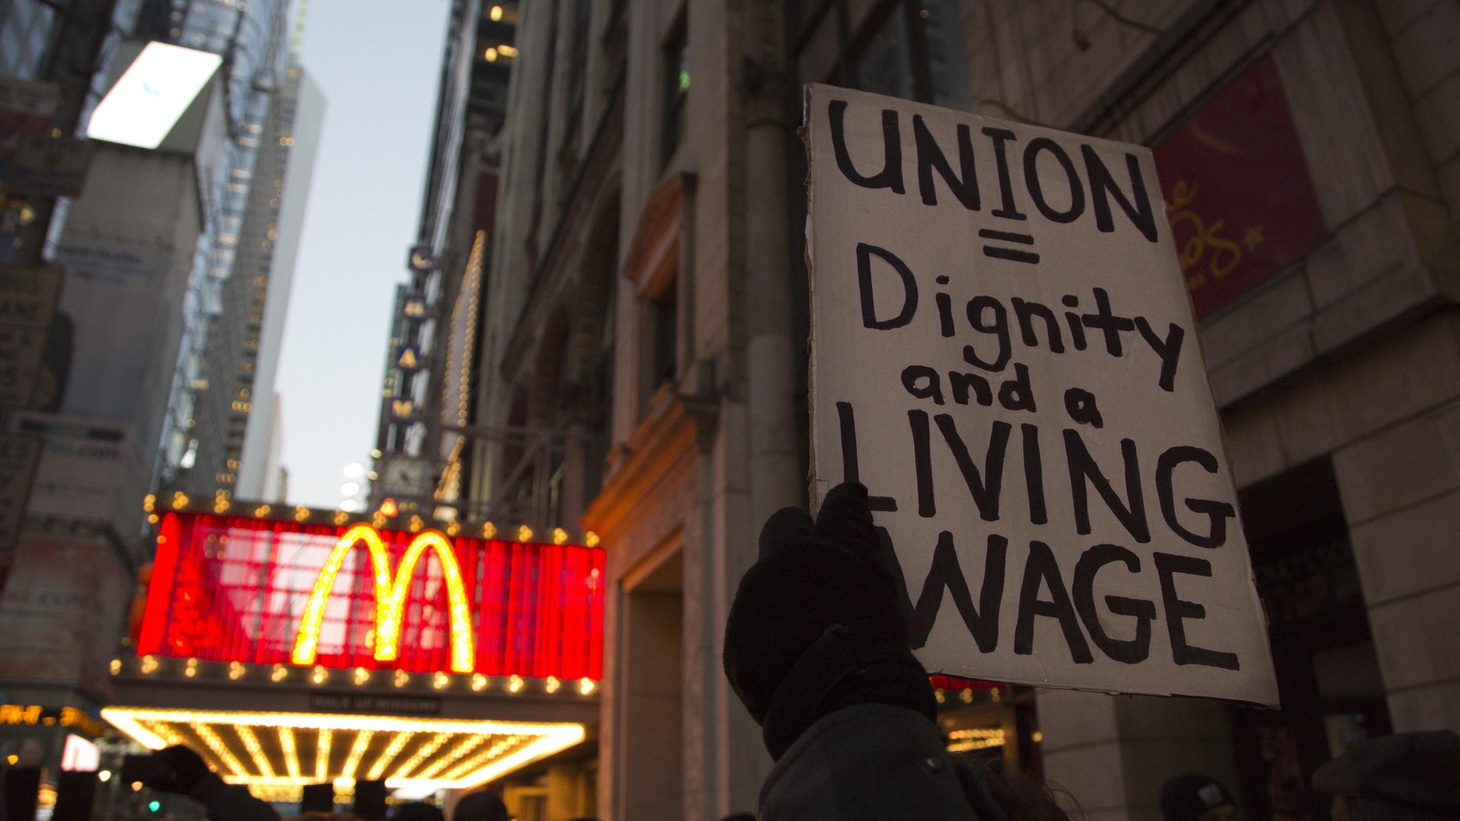 Hundreds of fast-food workers in 7 cities have walked off their jobs this week, in hopes of raising public consciousness about low pay and working conditions.